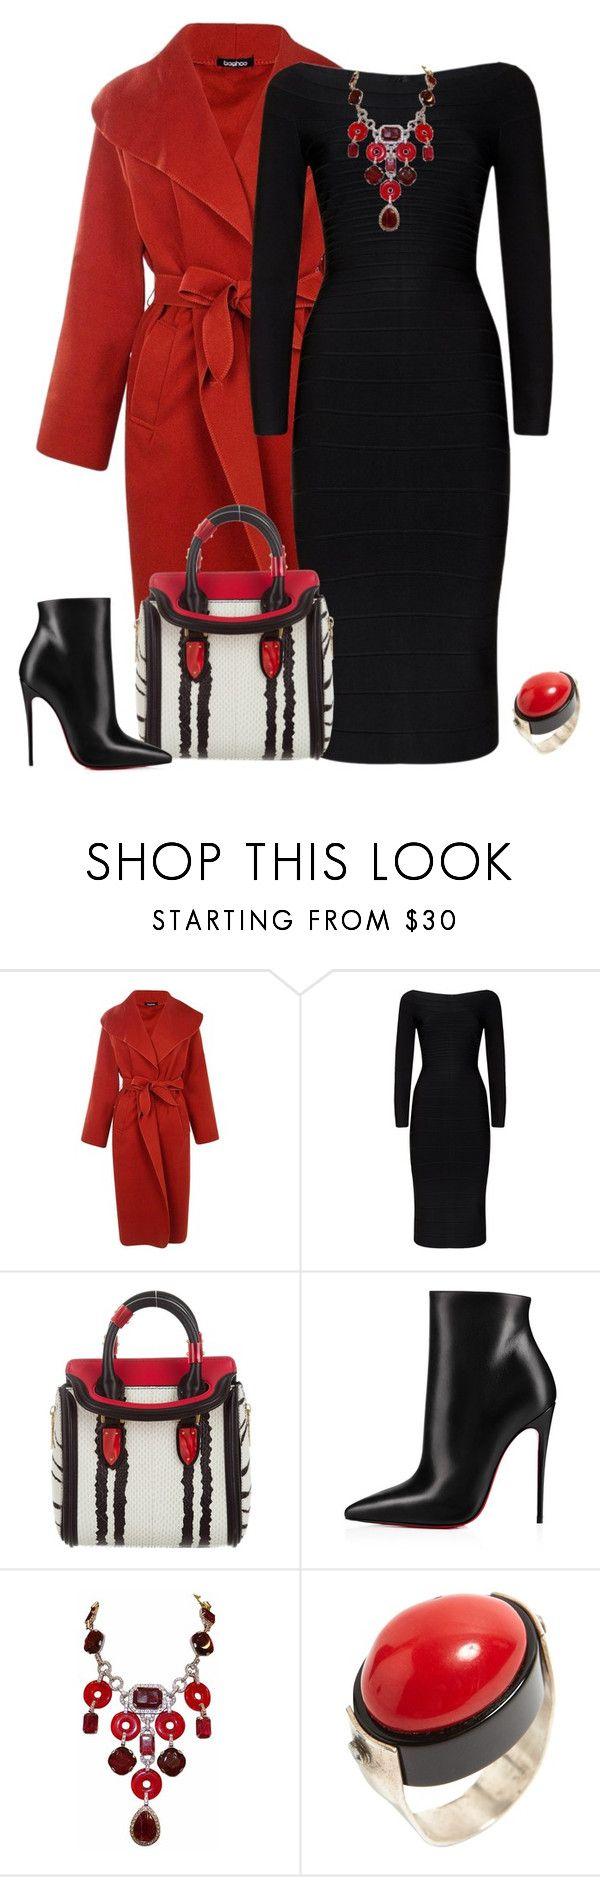 """outfit 6730"" by natalyag ❤ liked on Polyvore featuring Boohoo, Hervé Léger, Alexander McQueen, Christian Louboutin and Carlo Zini"